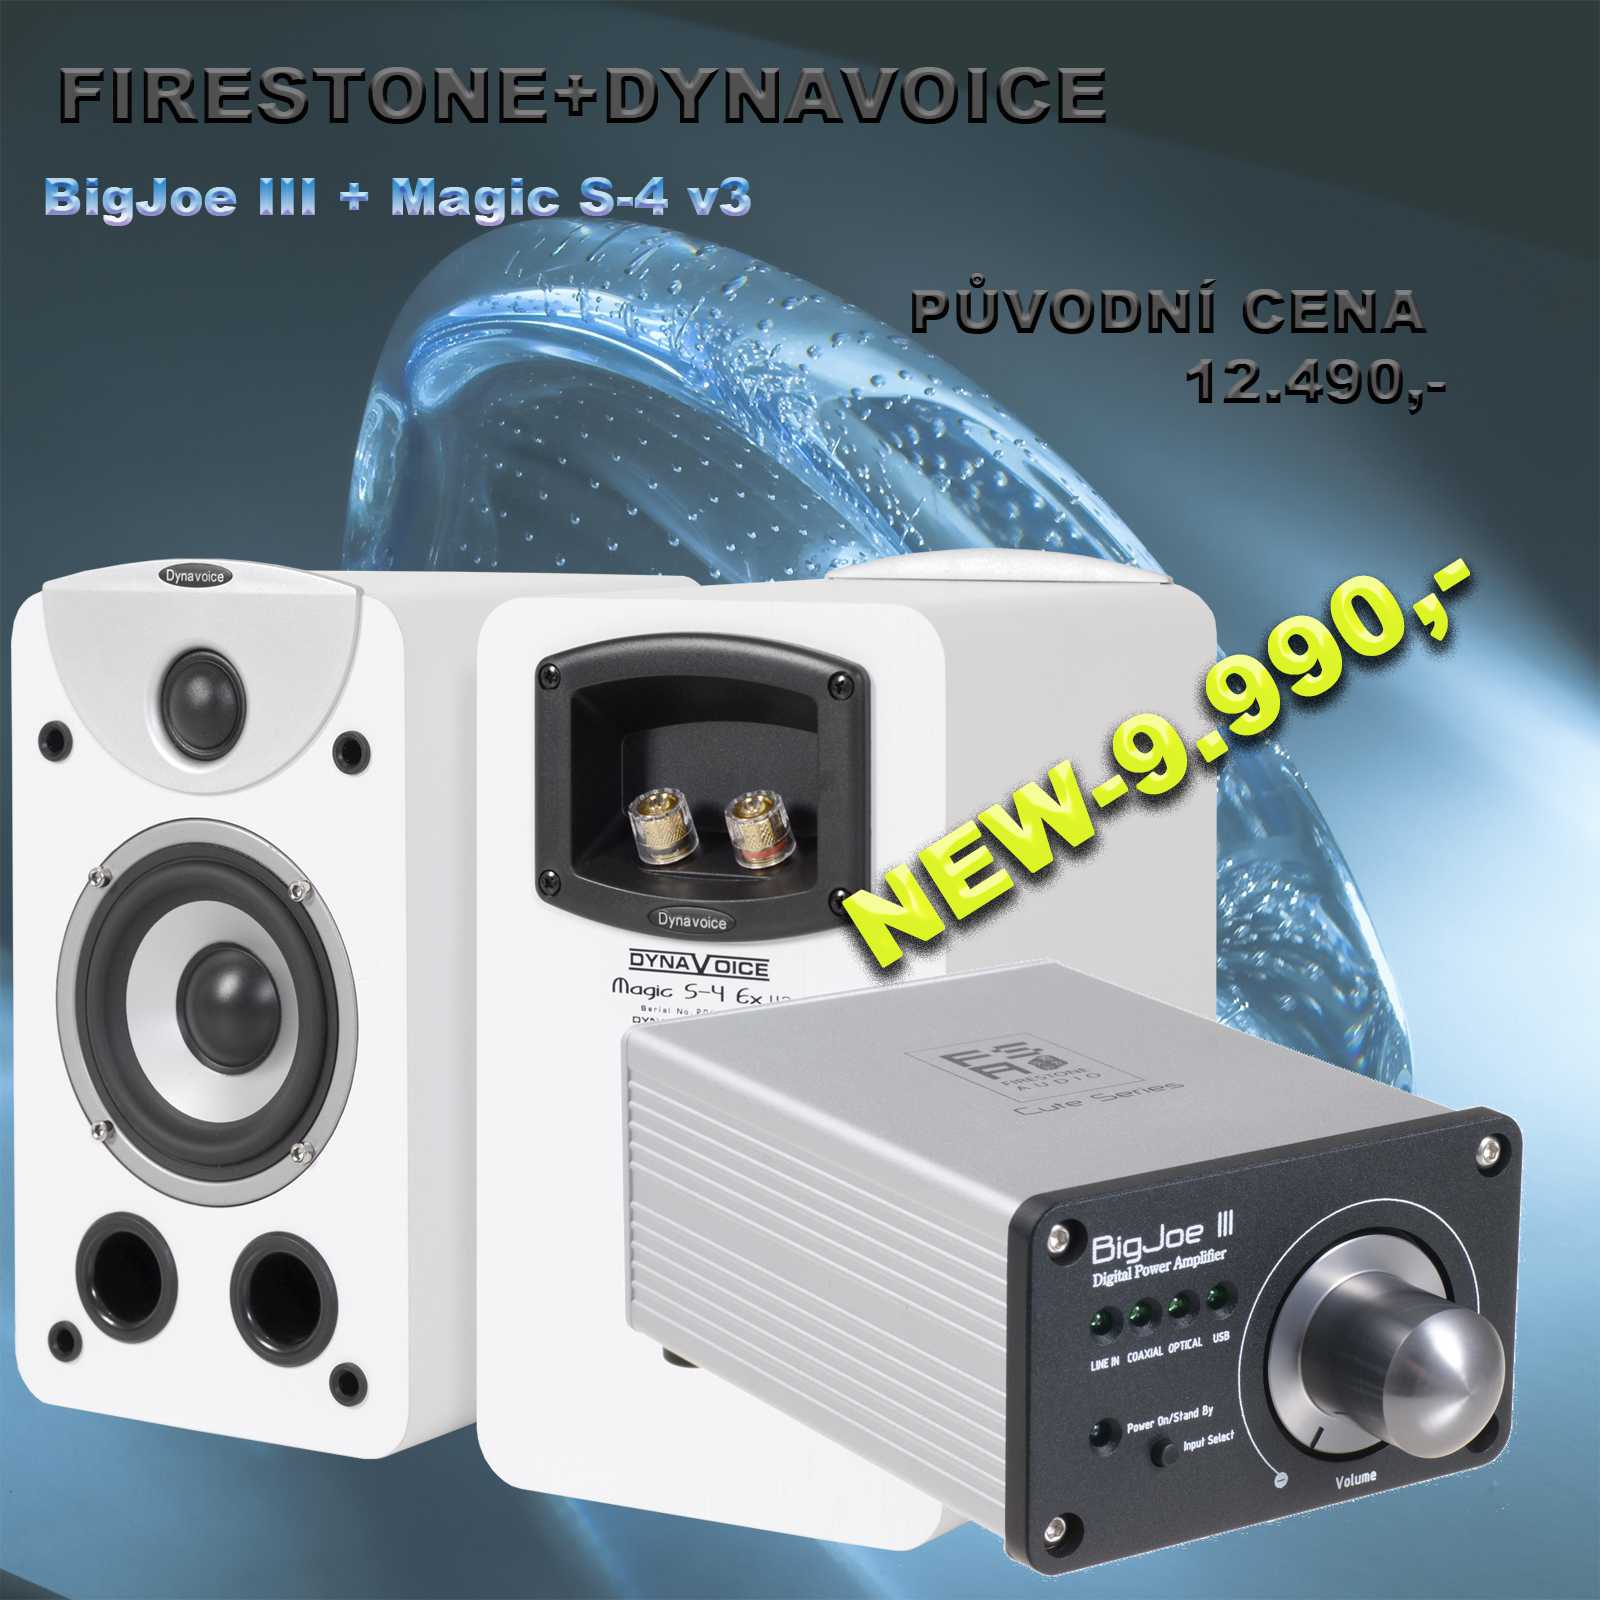 Firestone Audio + Dynavoice S4